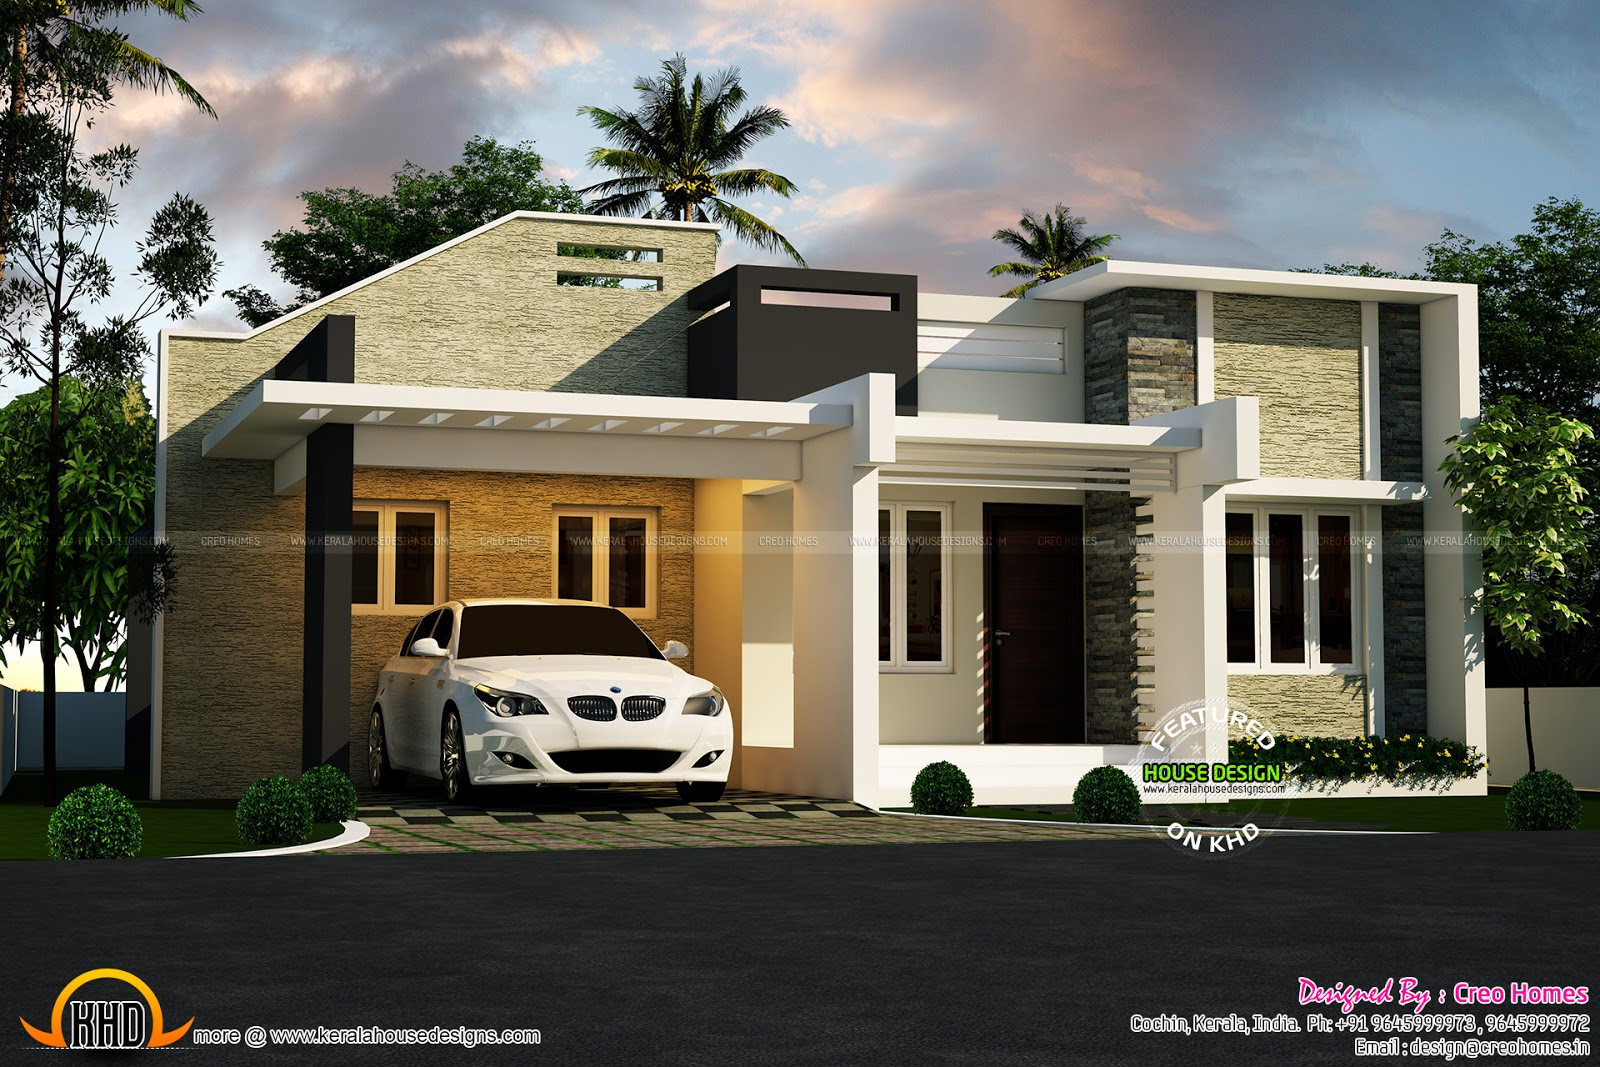 3 beautiful small house plans kerala home design and for Small house design plans in india image